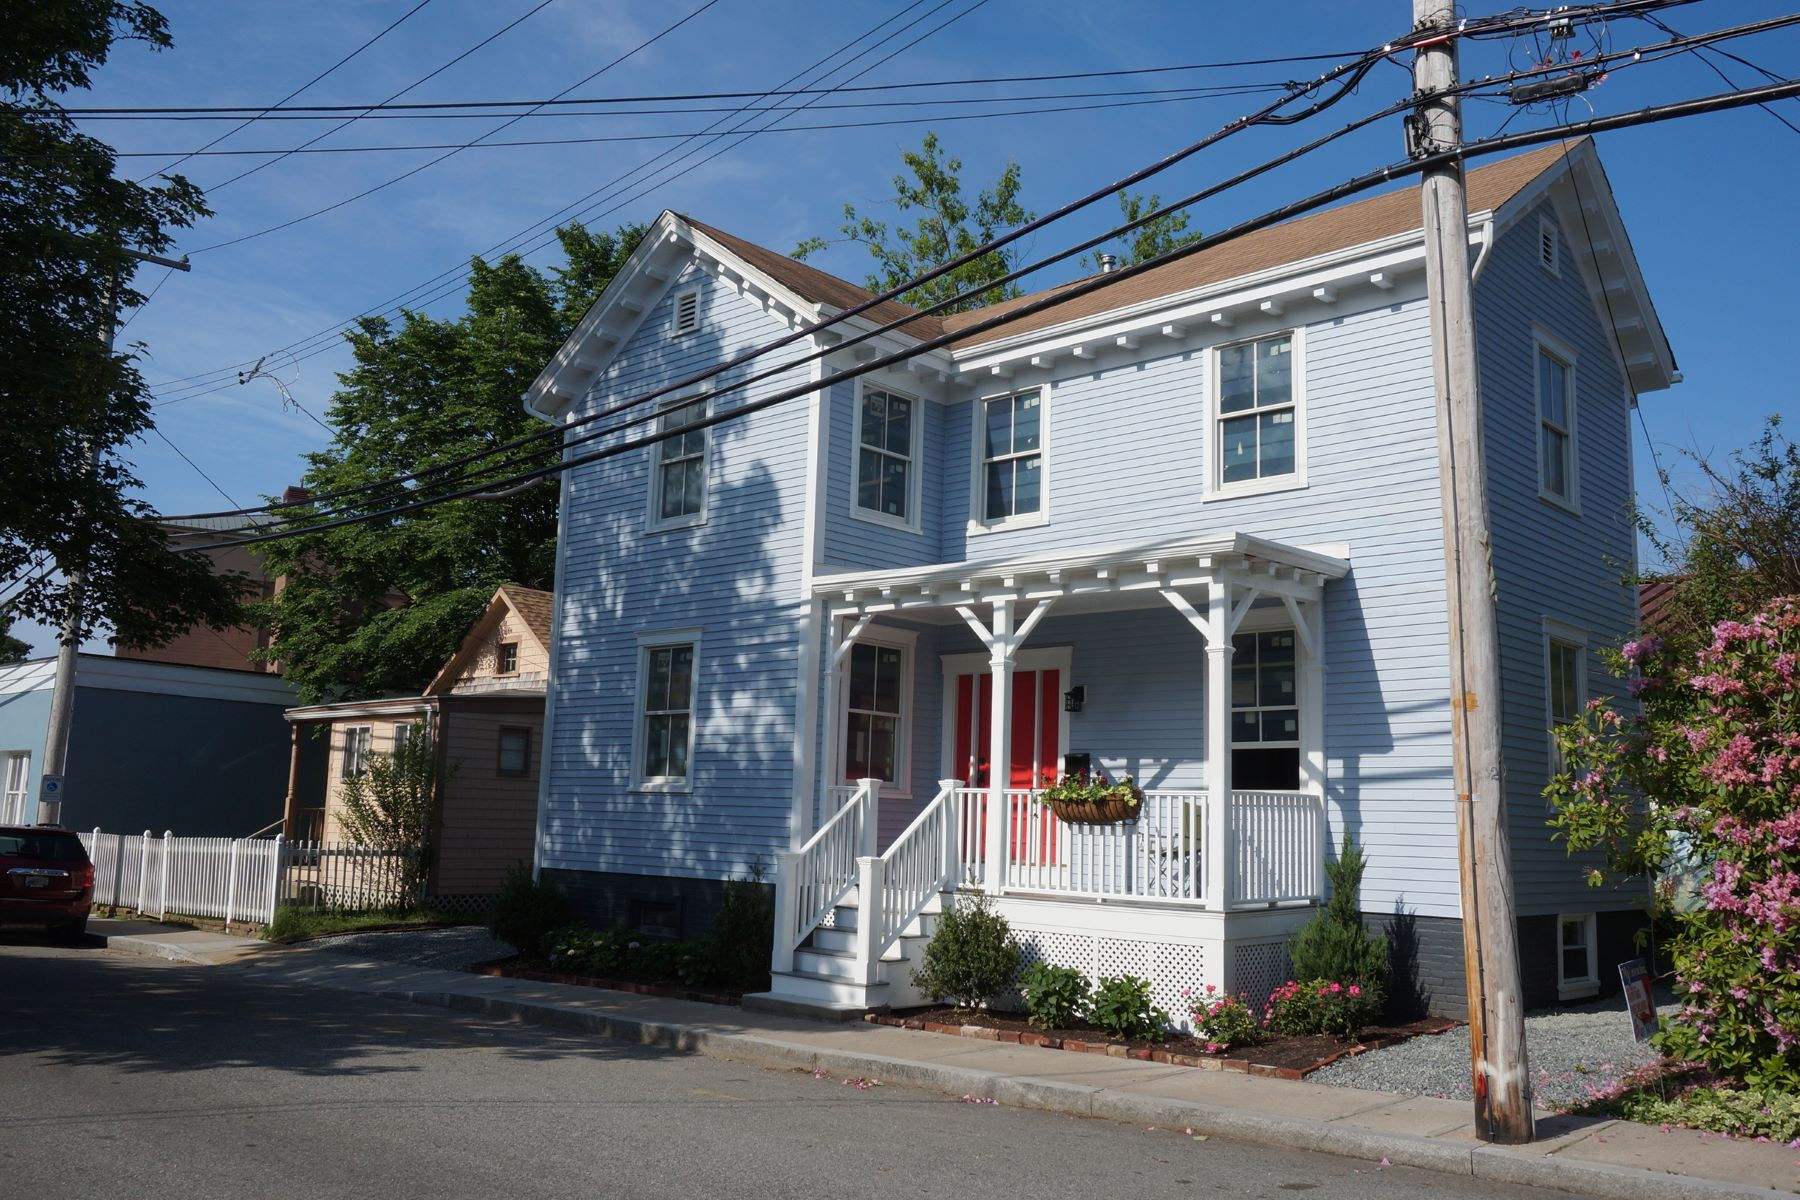 Single Family Home for Sale at The John E. Dowling House 13 Chapel Street Newport, Rhode Island 02840 United States